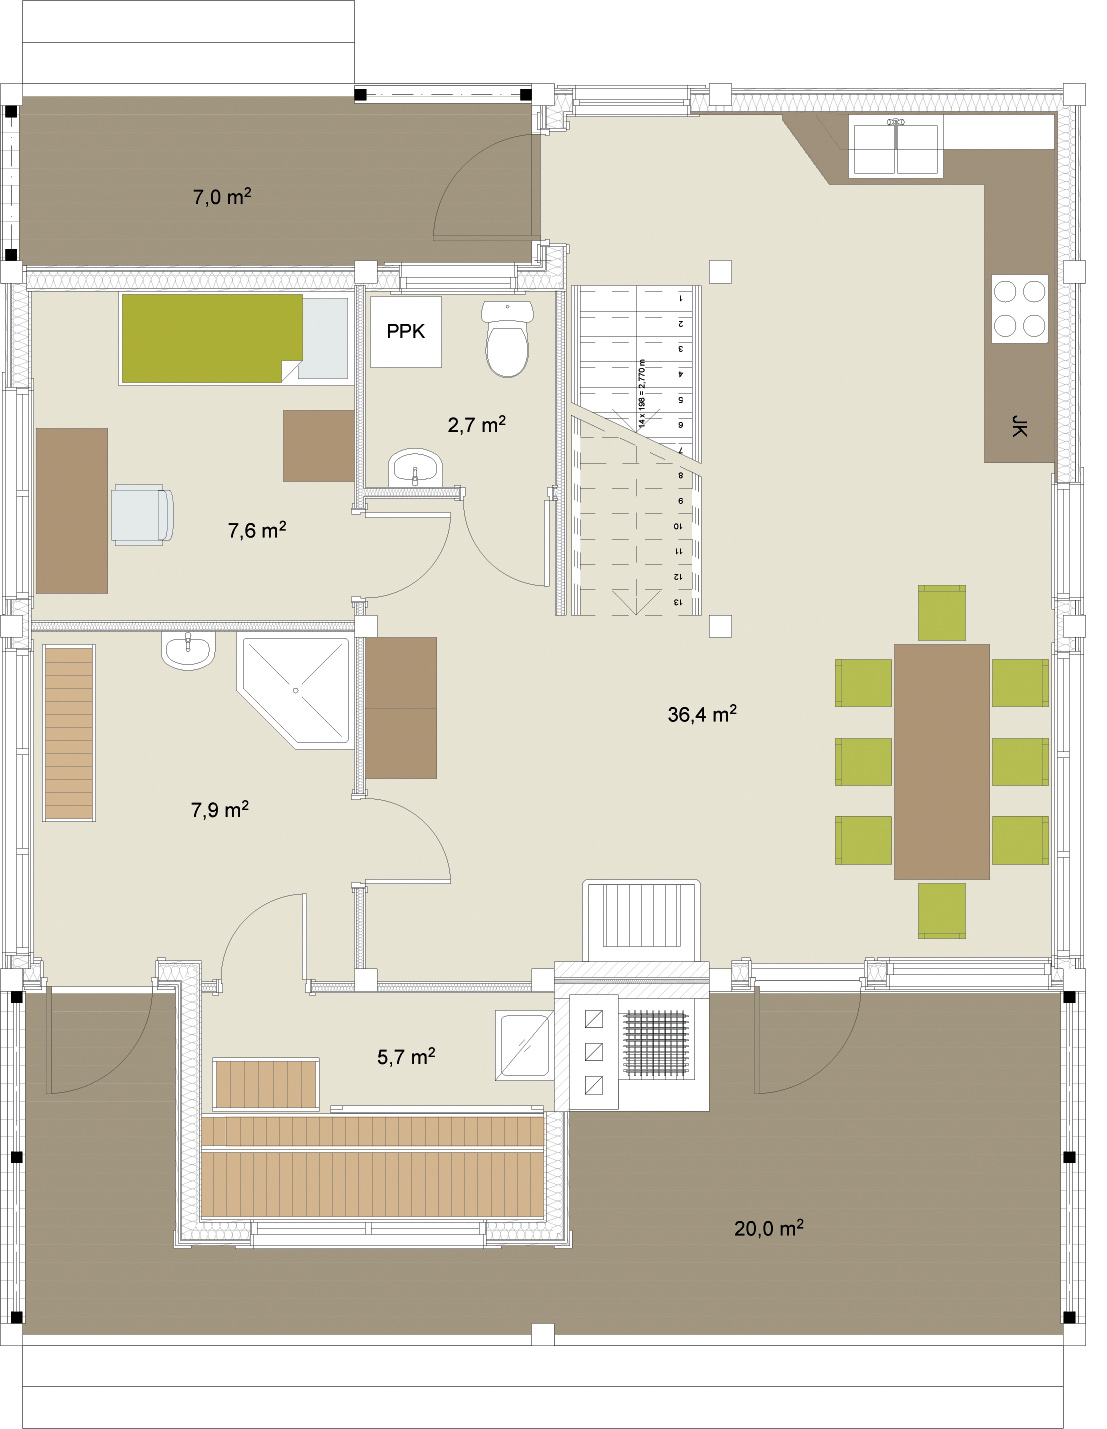 Artic Frame 176 wooden home floorplans